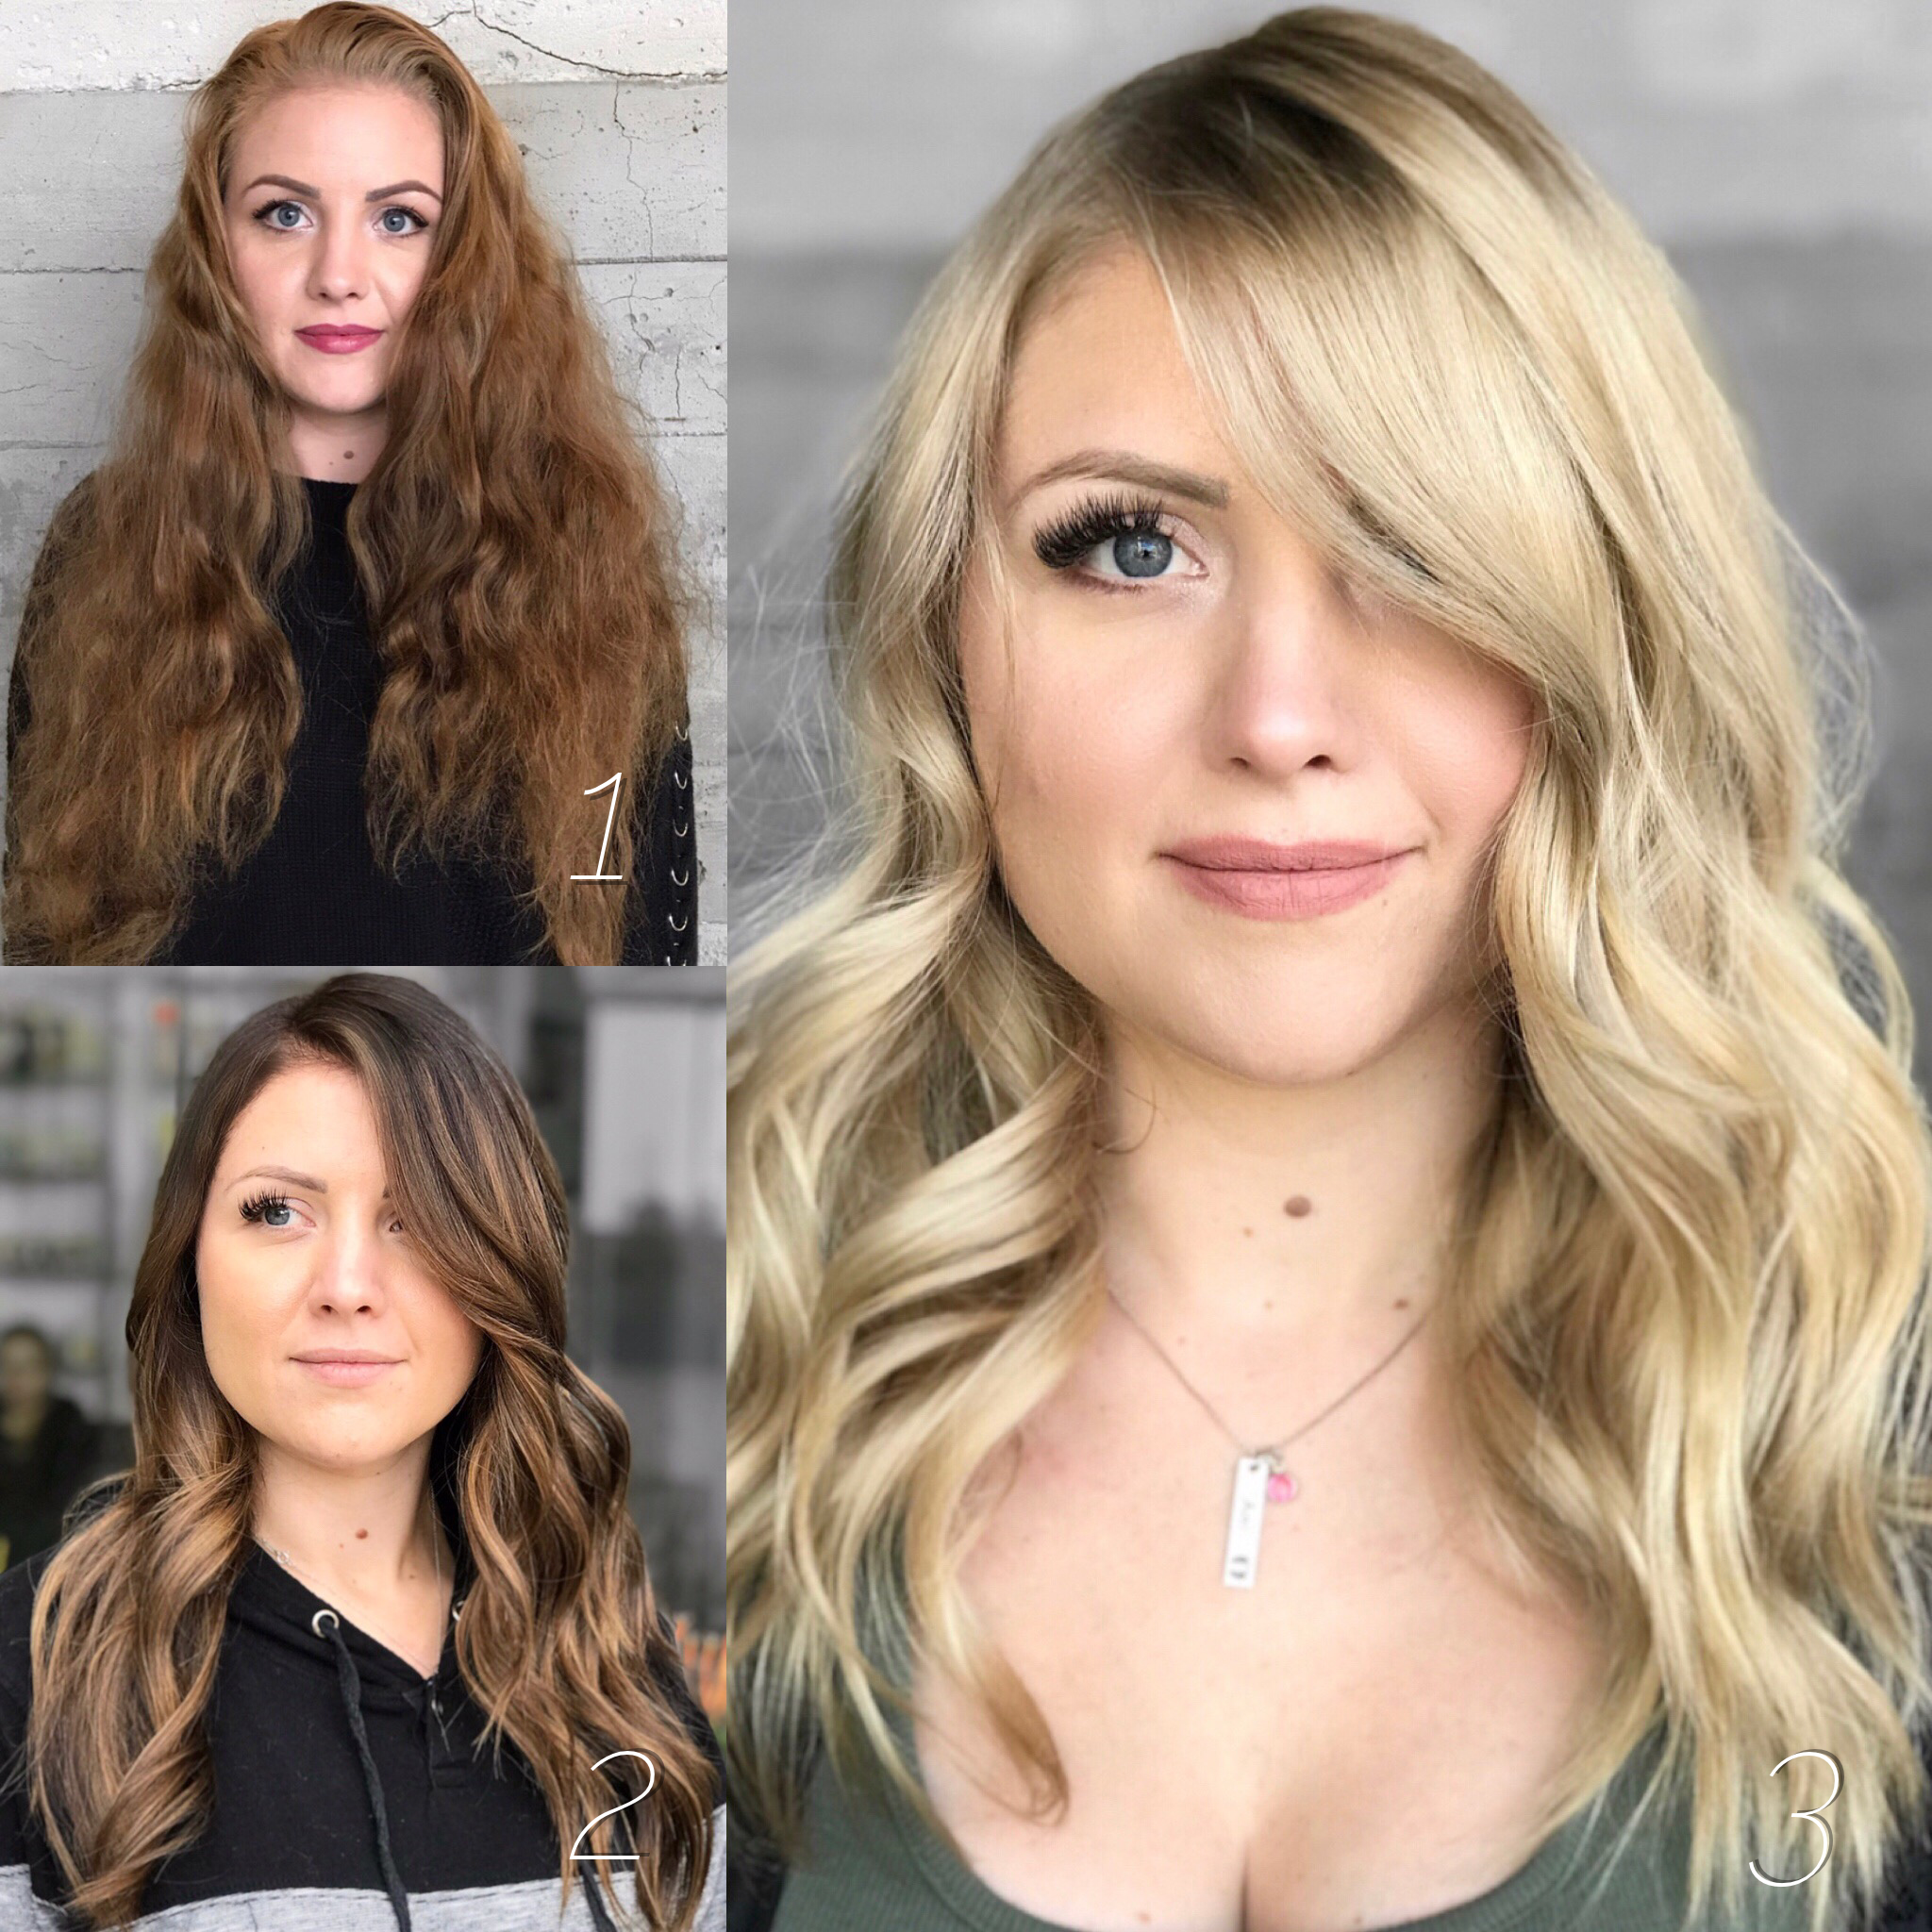 Hair color makeover by Breanna Weinhold.